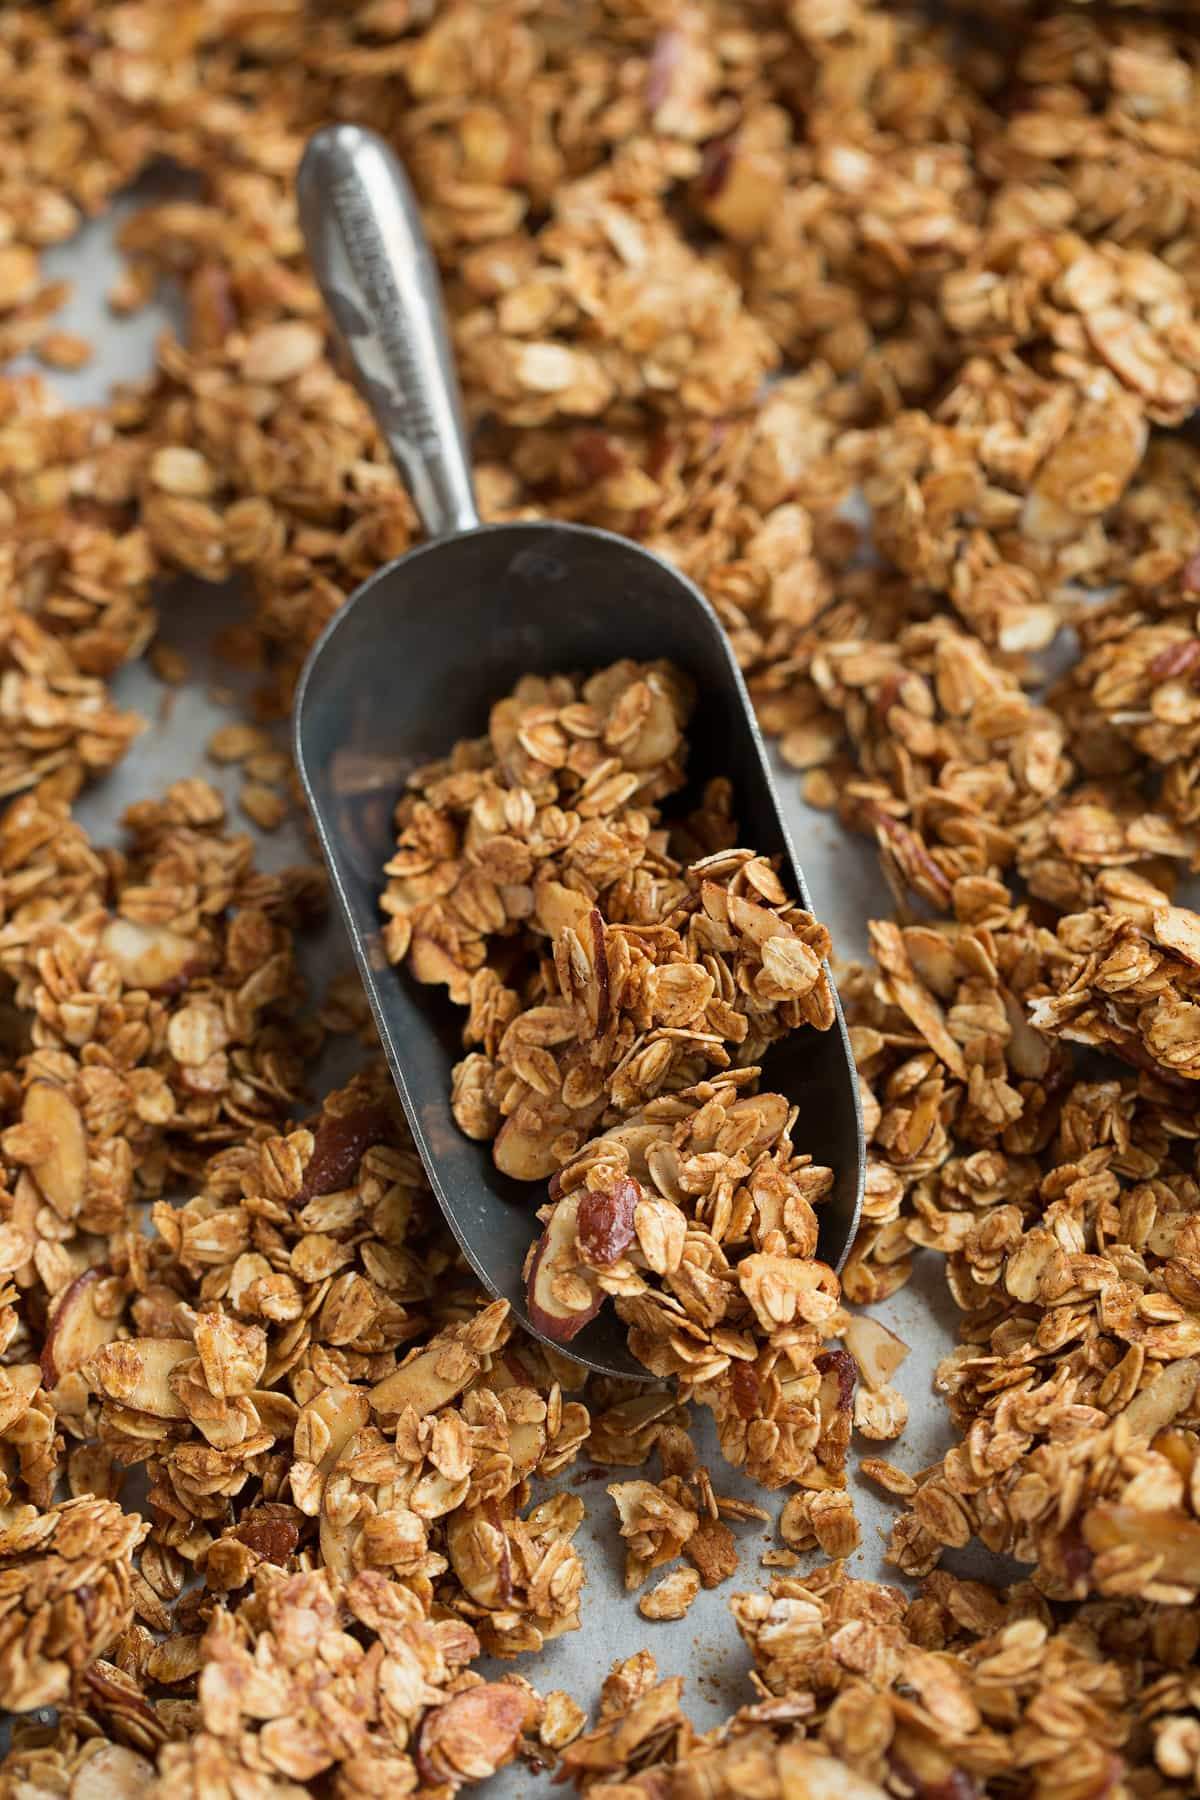 Granola shown in a scoop.